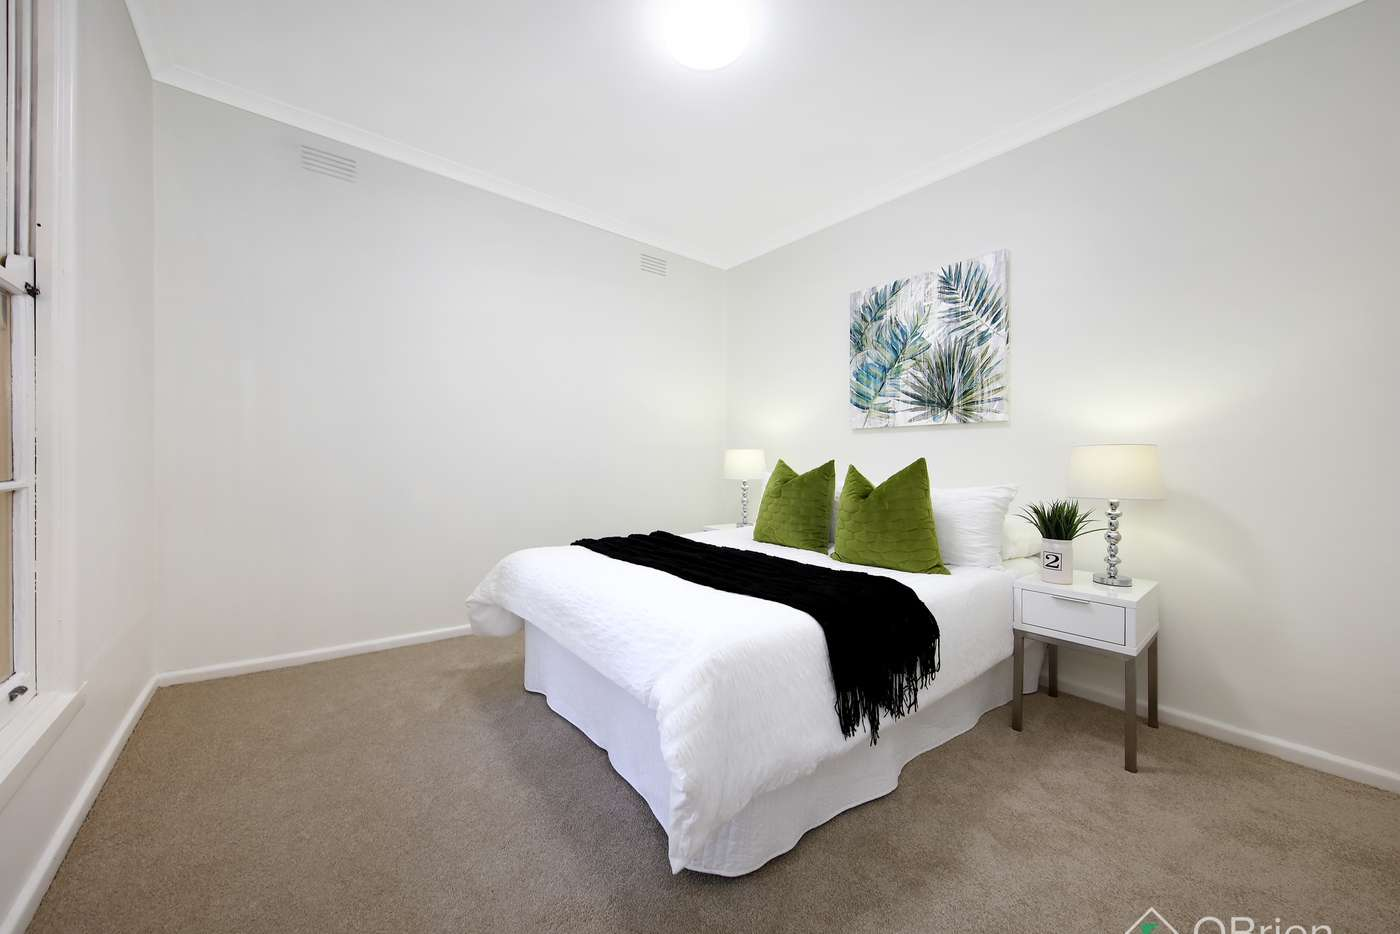 Sixth view of Homely unit listing, 5/1325 Dandenong Road, Malvern East VIC 3145